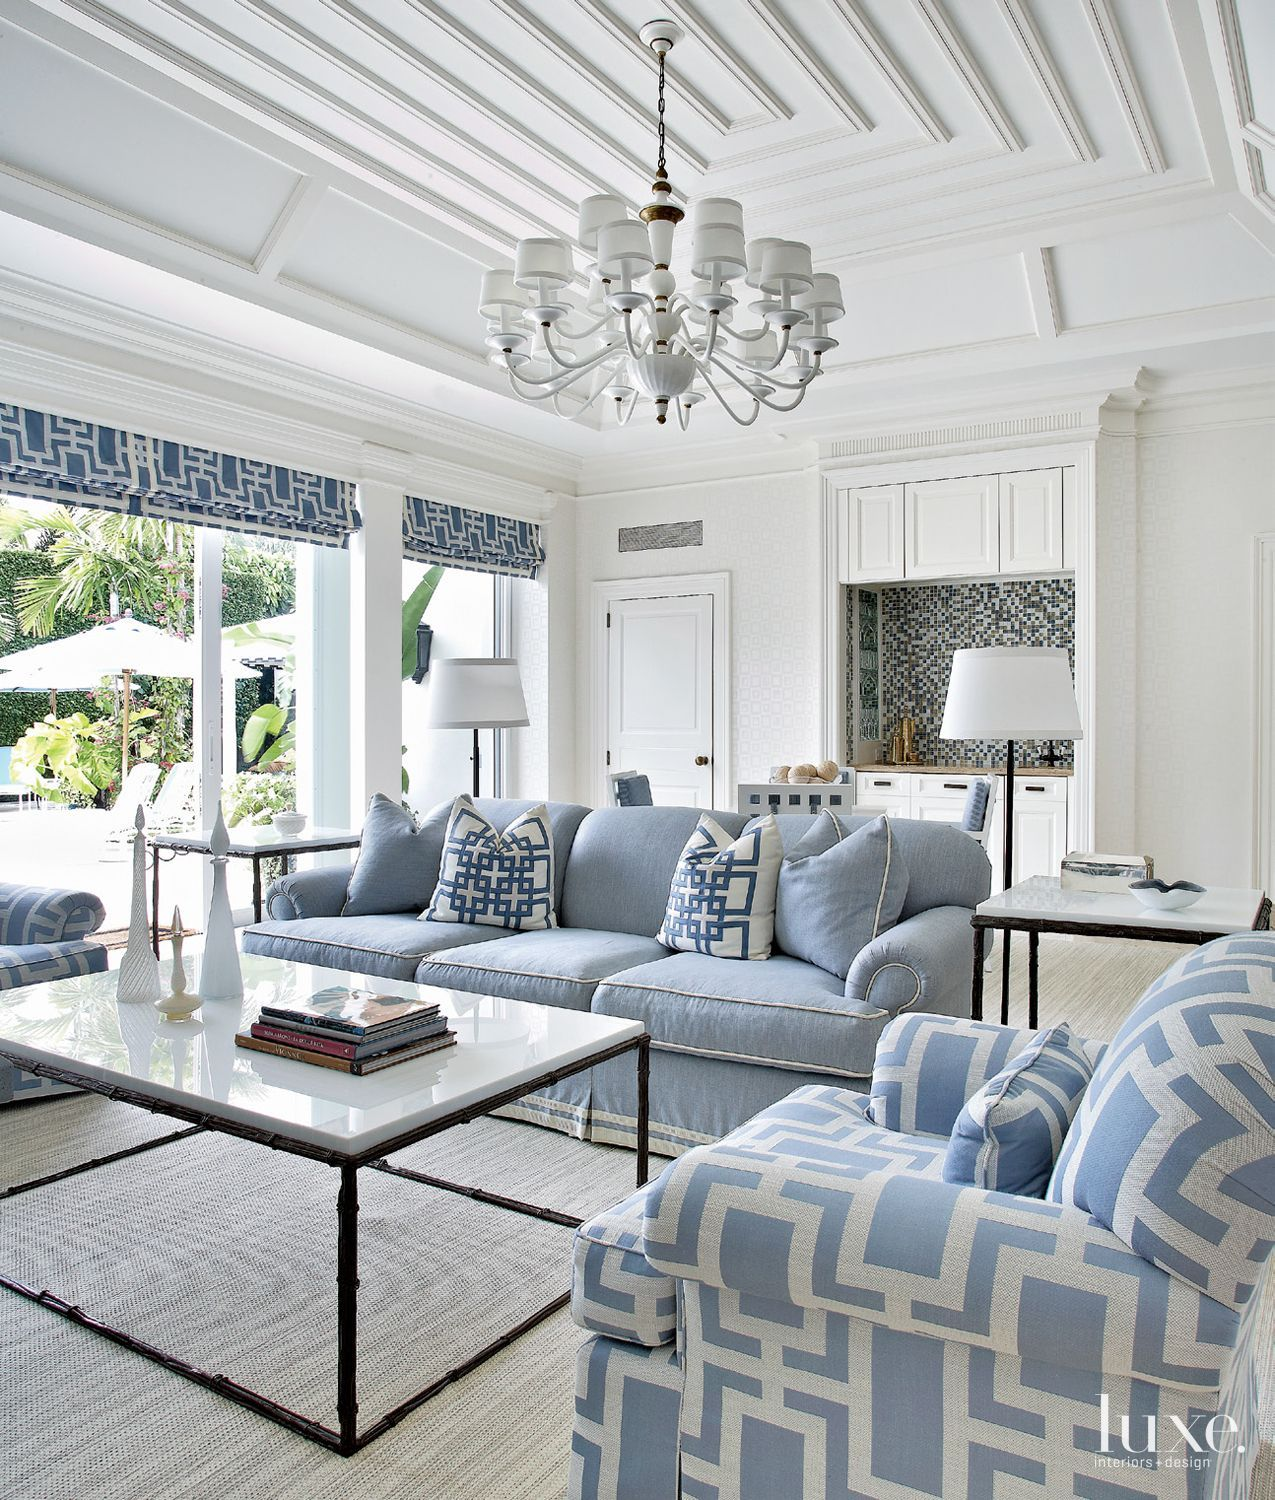 Living Room Blue And White Interior Design Home Interior Design,Kitchen Floor Plan Design